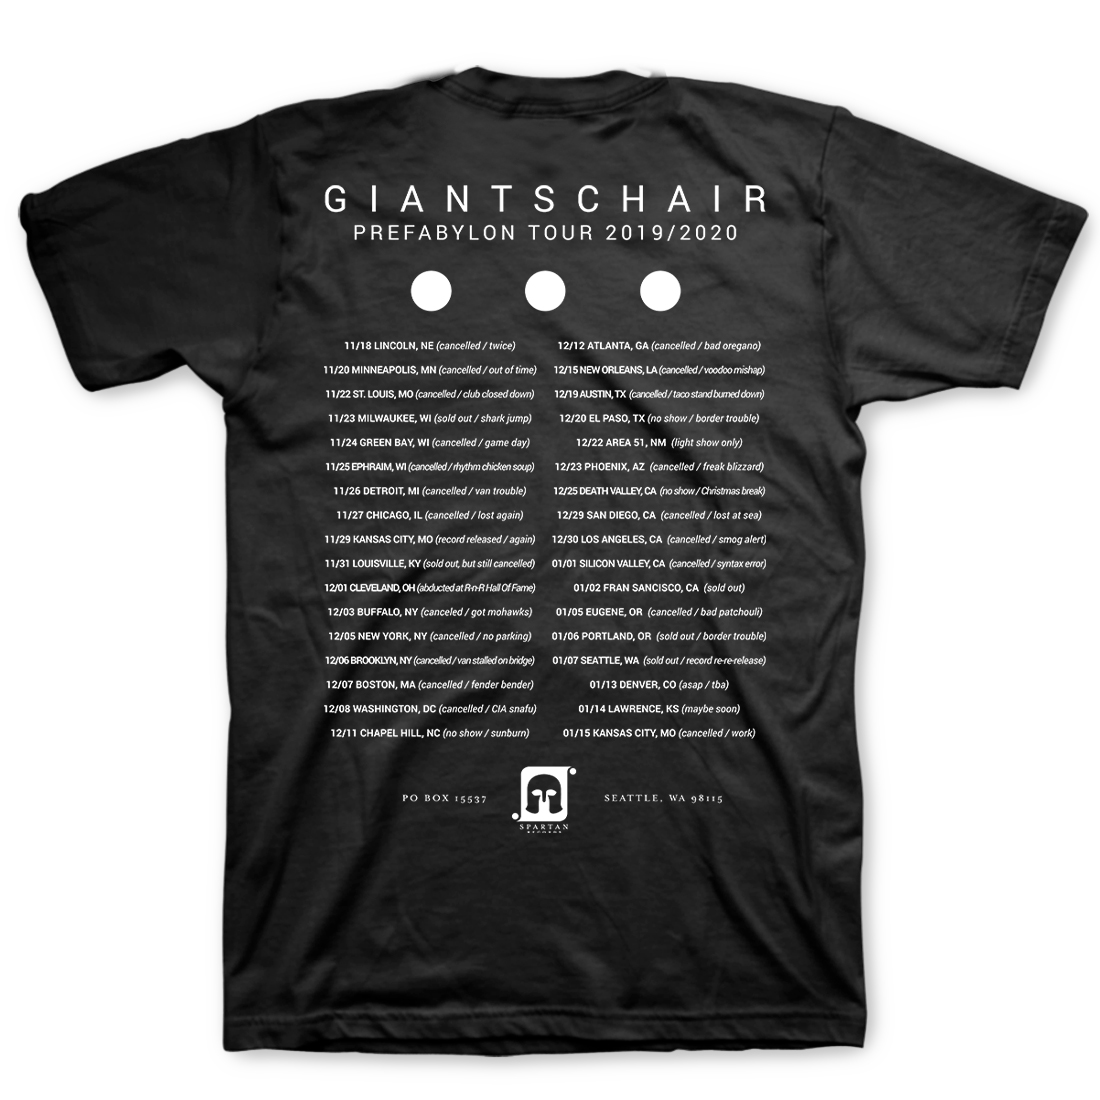 Giants Chair - Prefabylon T-Shirt